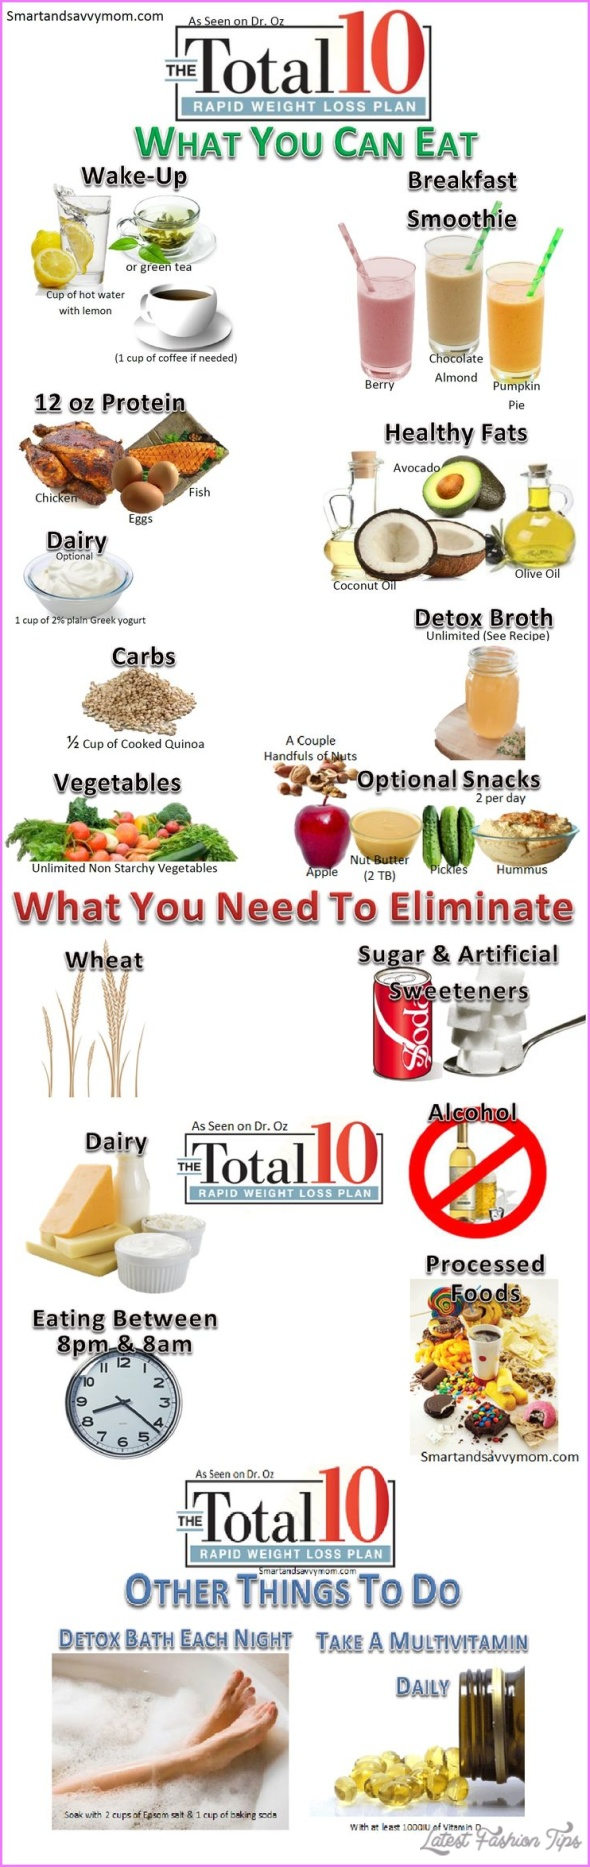 Meal plan and exercise plans for weight loss latestfashiontips meal plan and exercise plans for weight loss 8g nvjuhfo Images